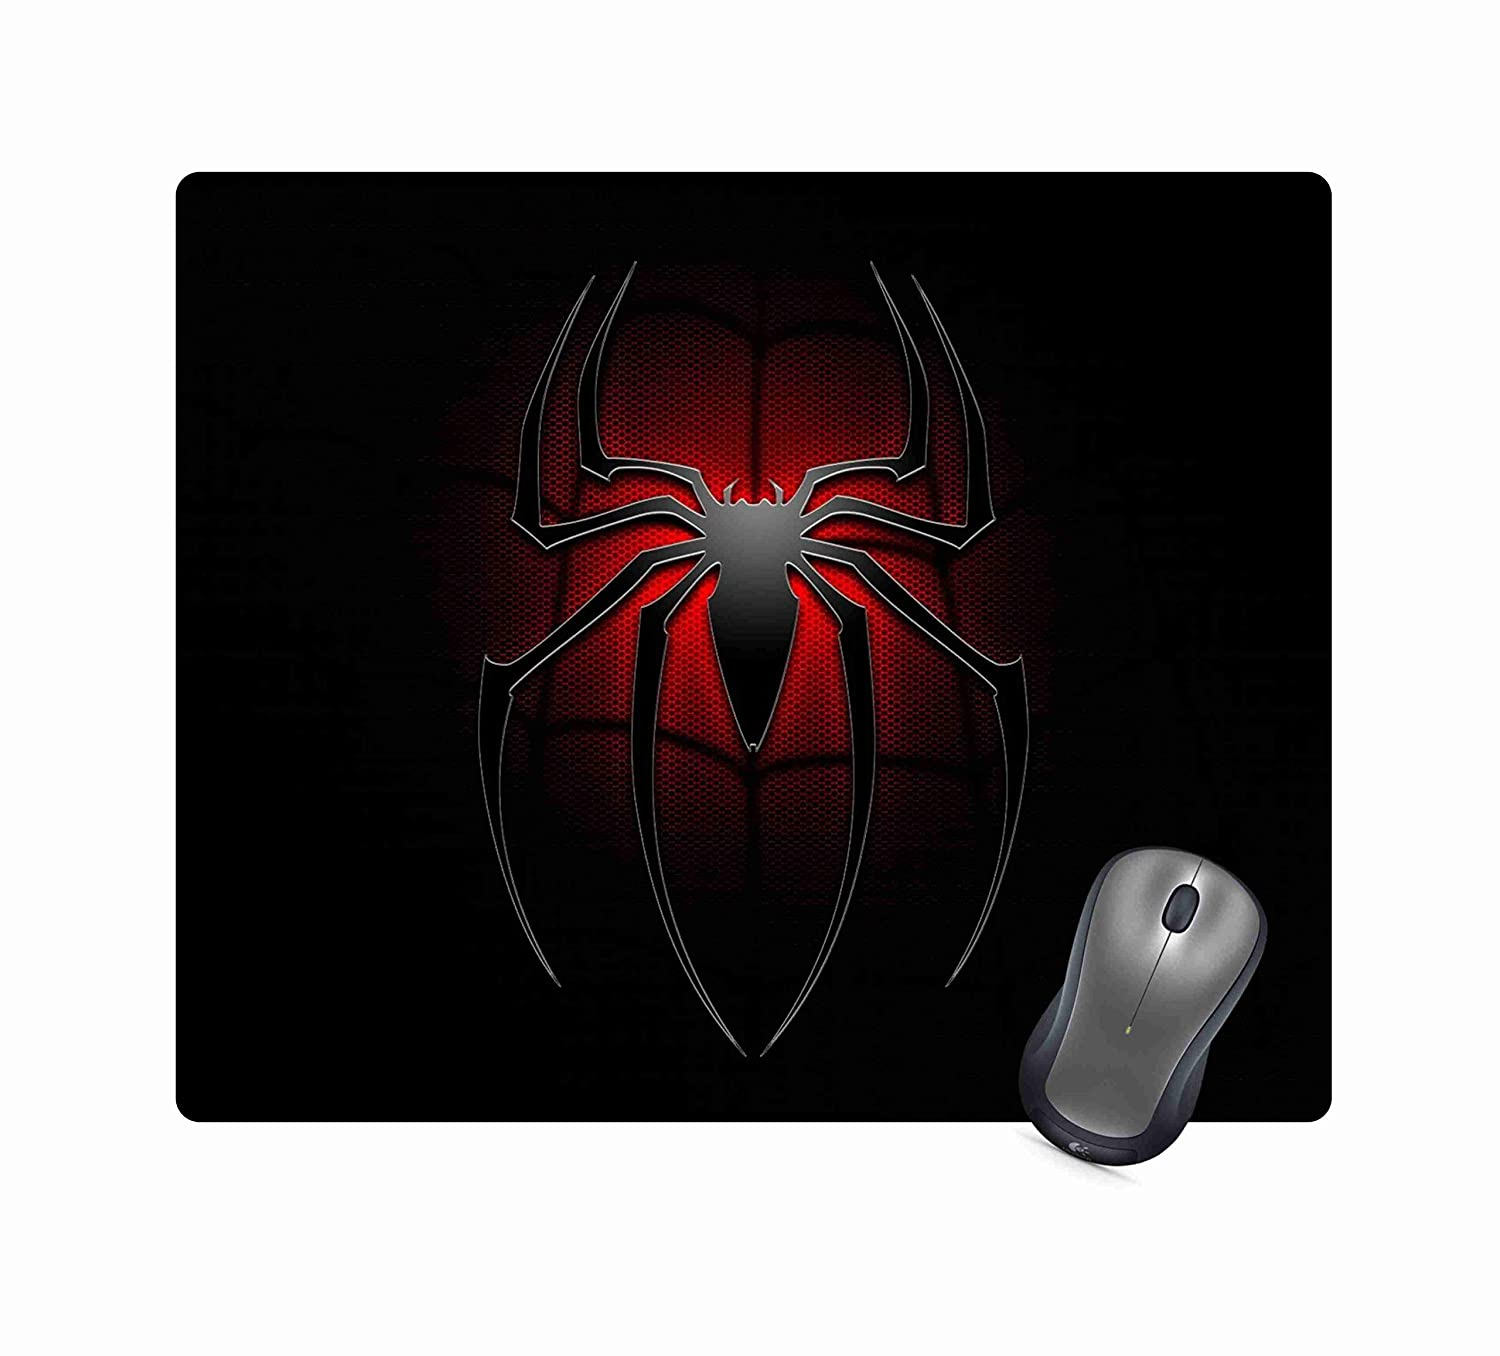 Golden Feather Anti Skid Marvel Avengers Super Heroes Designer Mouse pad for laptops and Computers Gaming Mousepad (Undero 200)